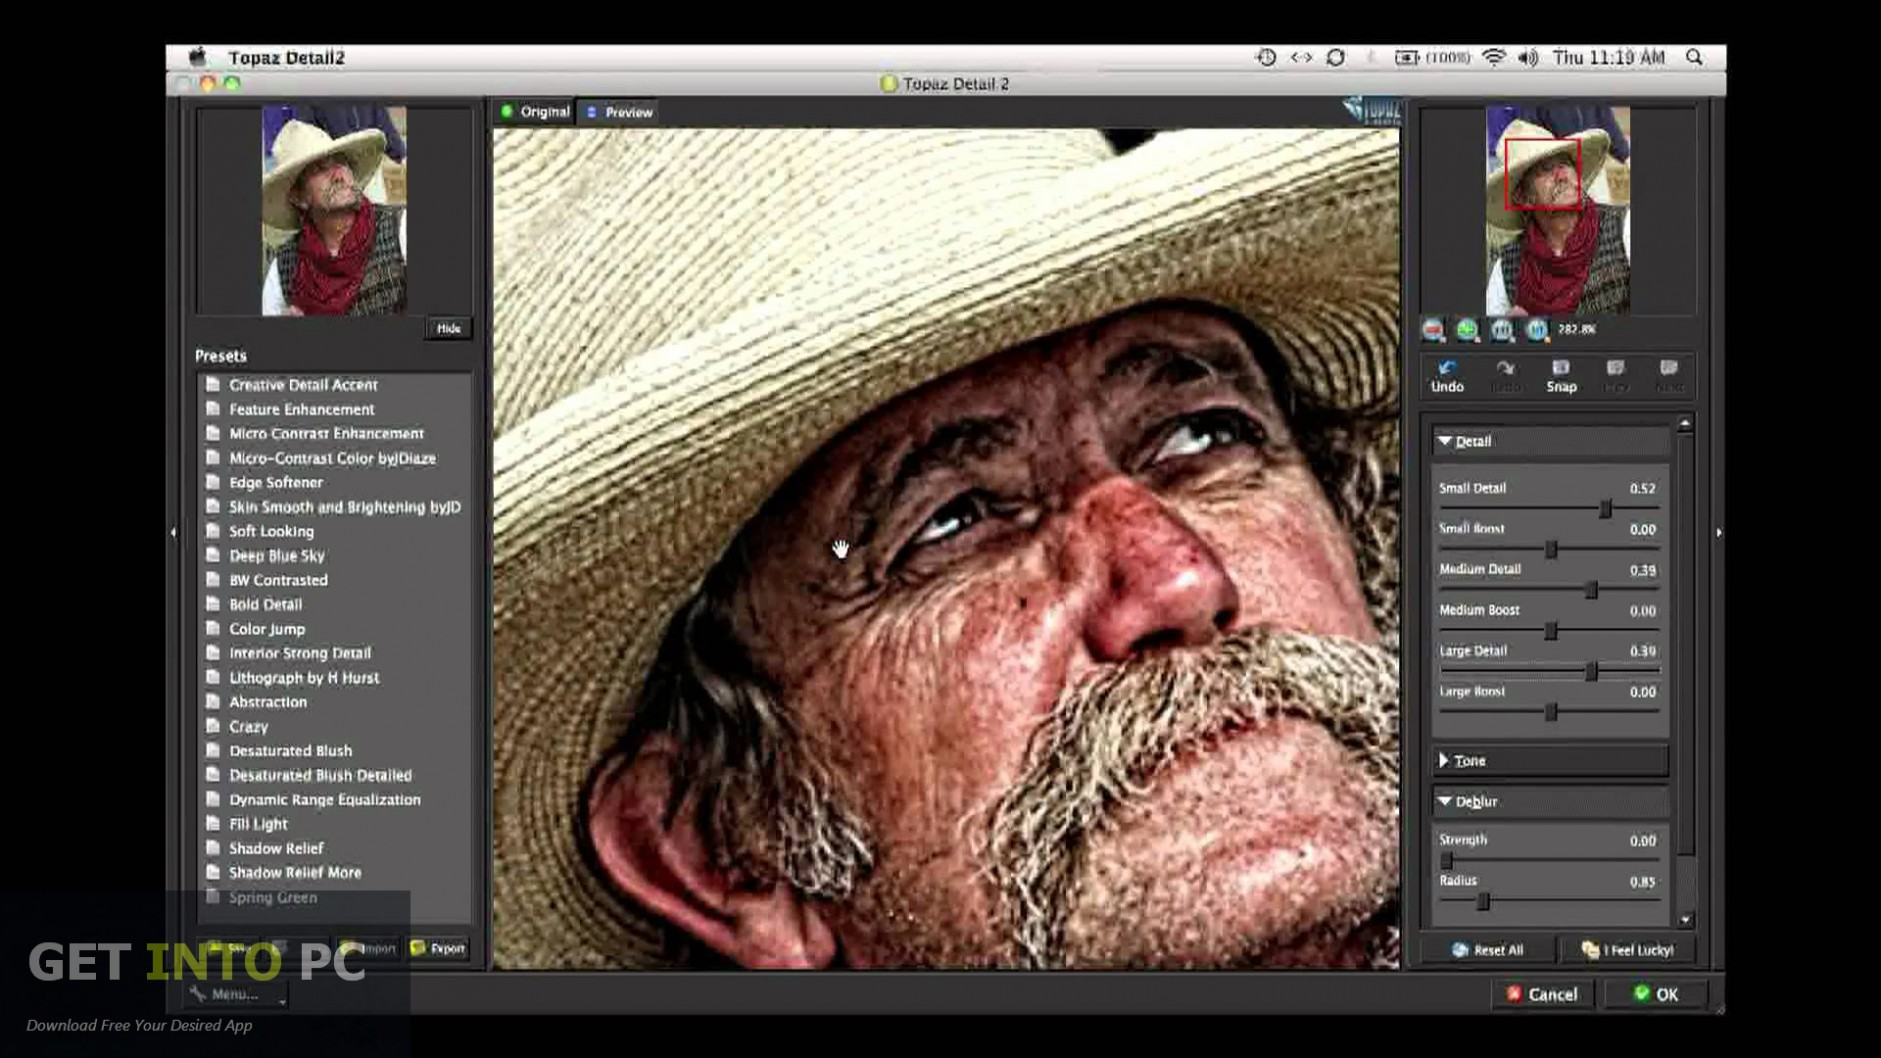 Topaz Photoshop Plugins For Windows